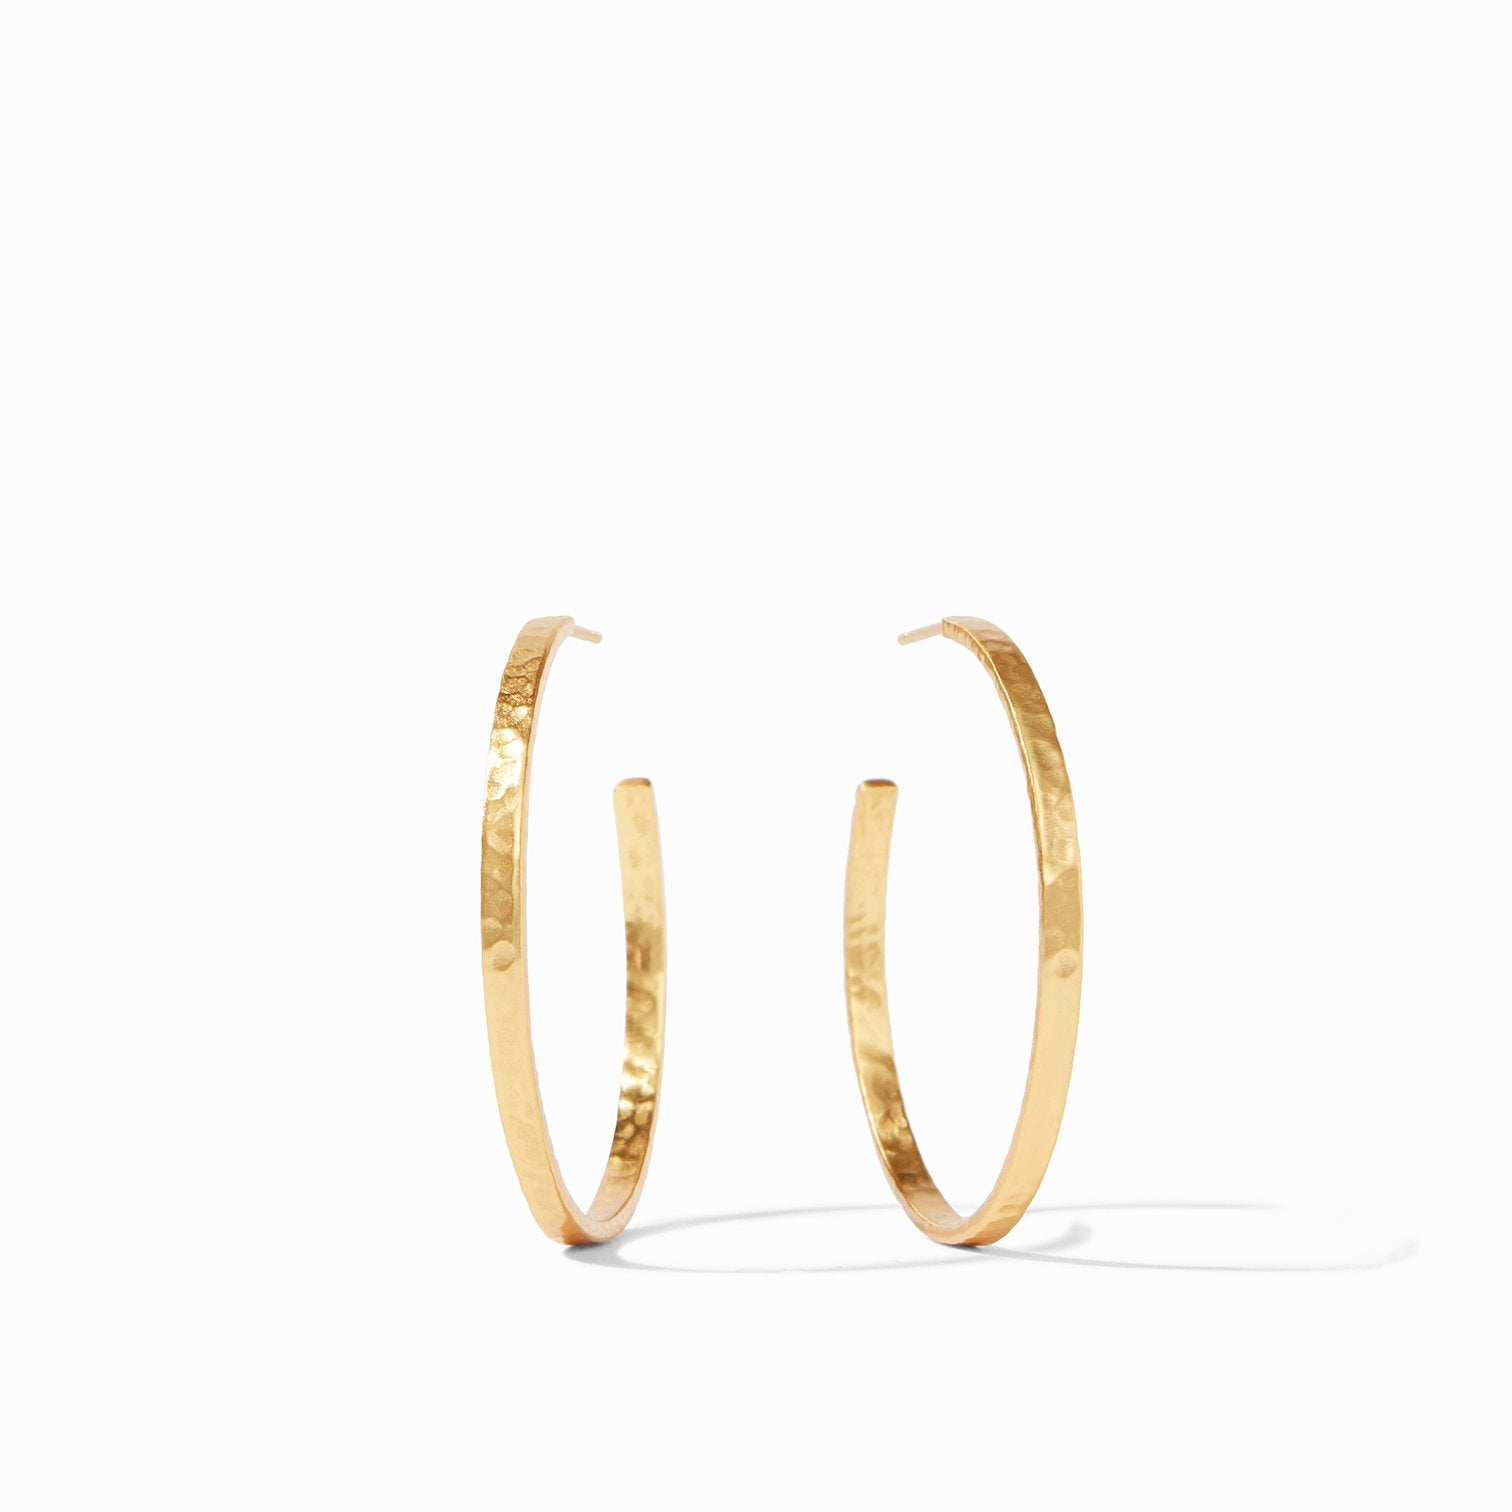 JULIE VOS - MEDIUM Crescent Hoop EARRINGS